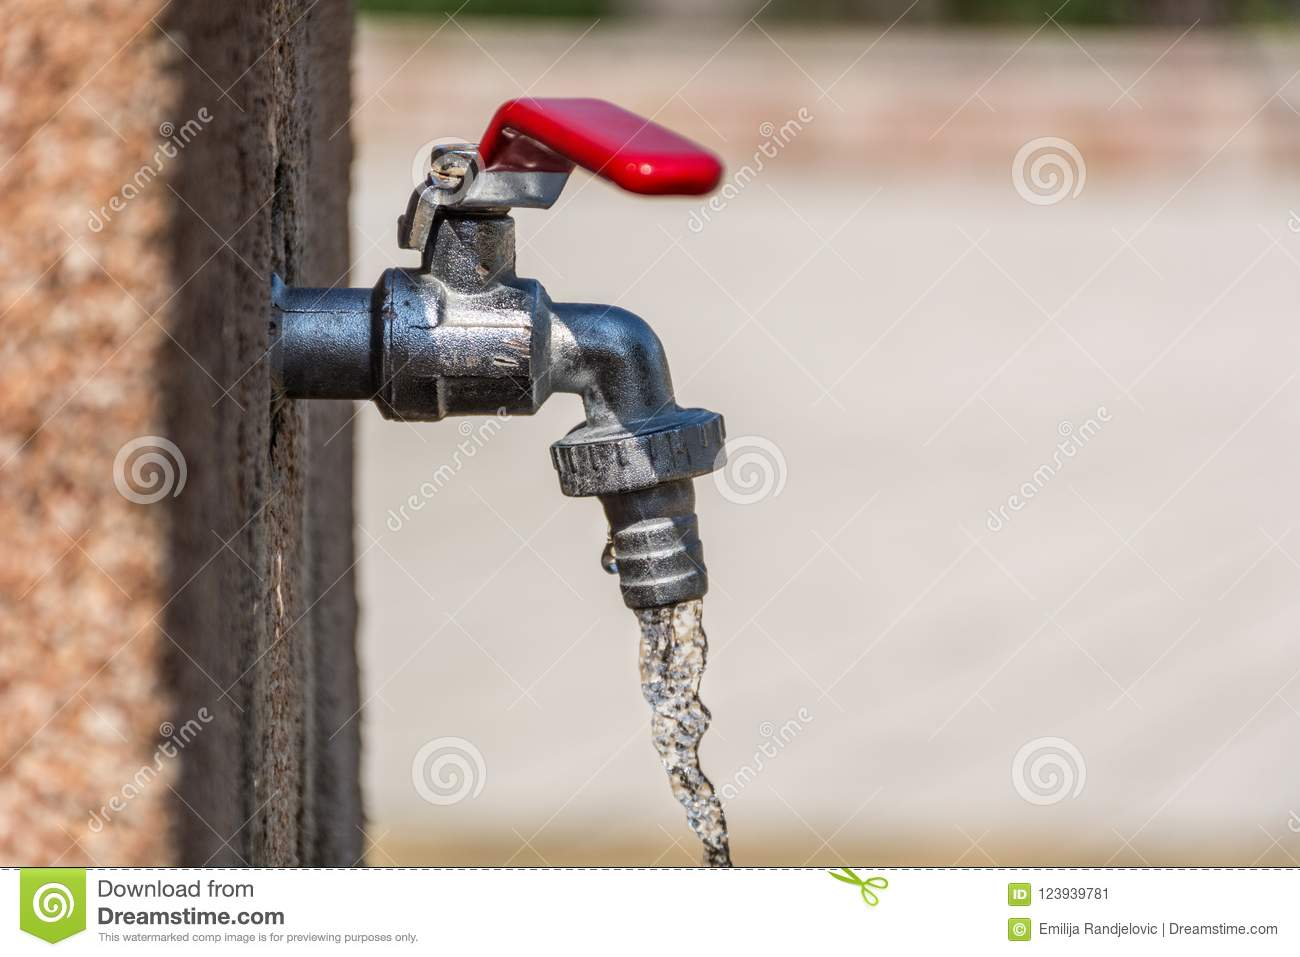 Faucet With Red Handle And Open Water Stock Image - Image of detail ...